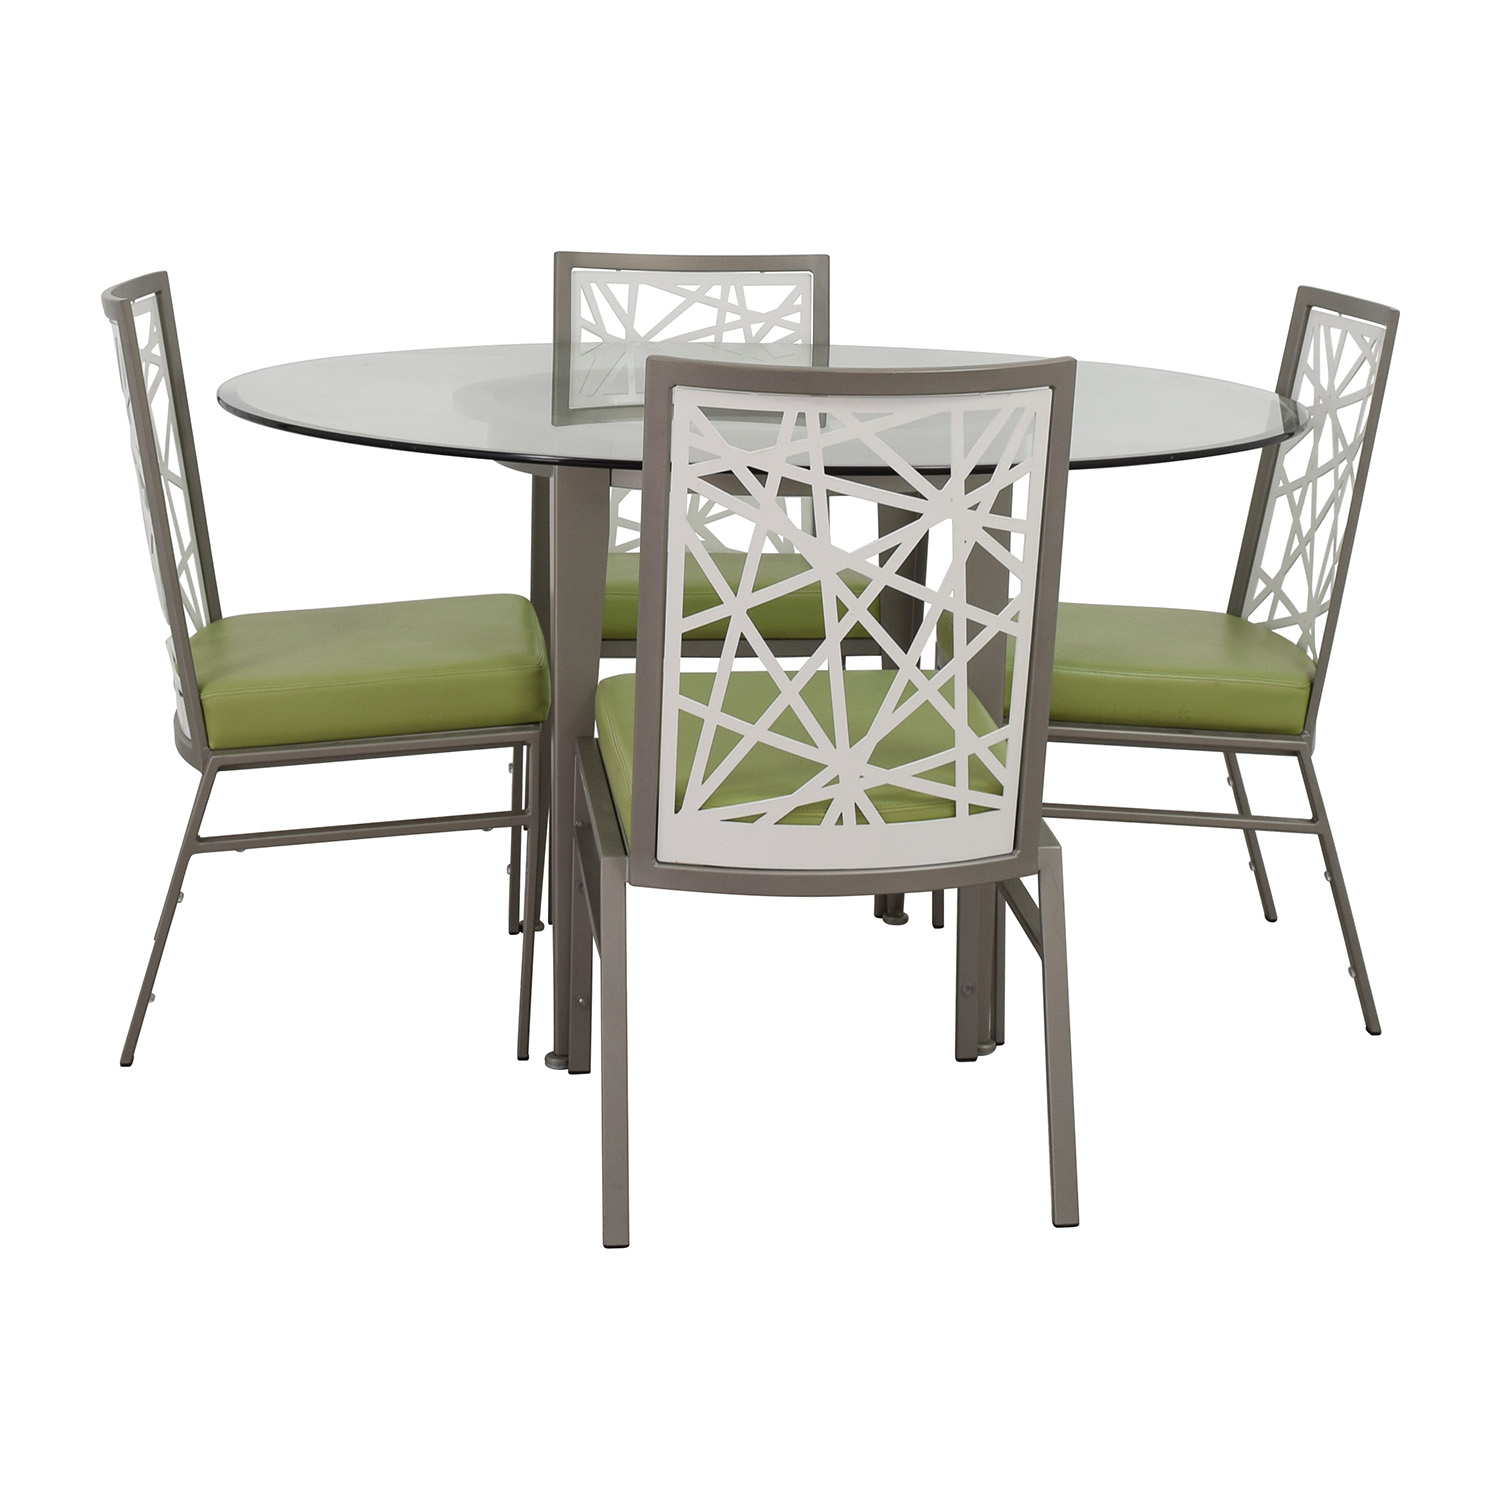 Bif Furniture Silver And Green Modern Dining Set For